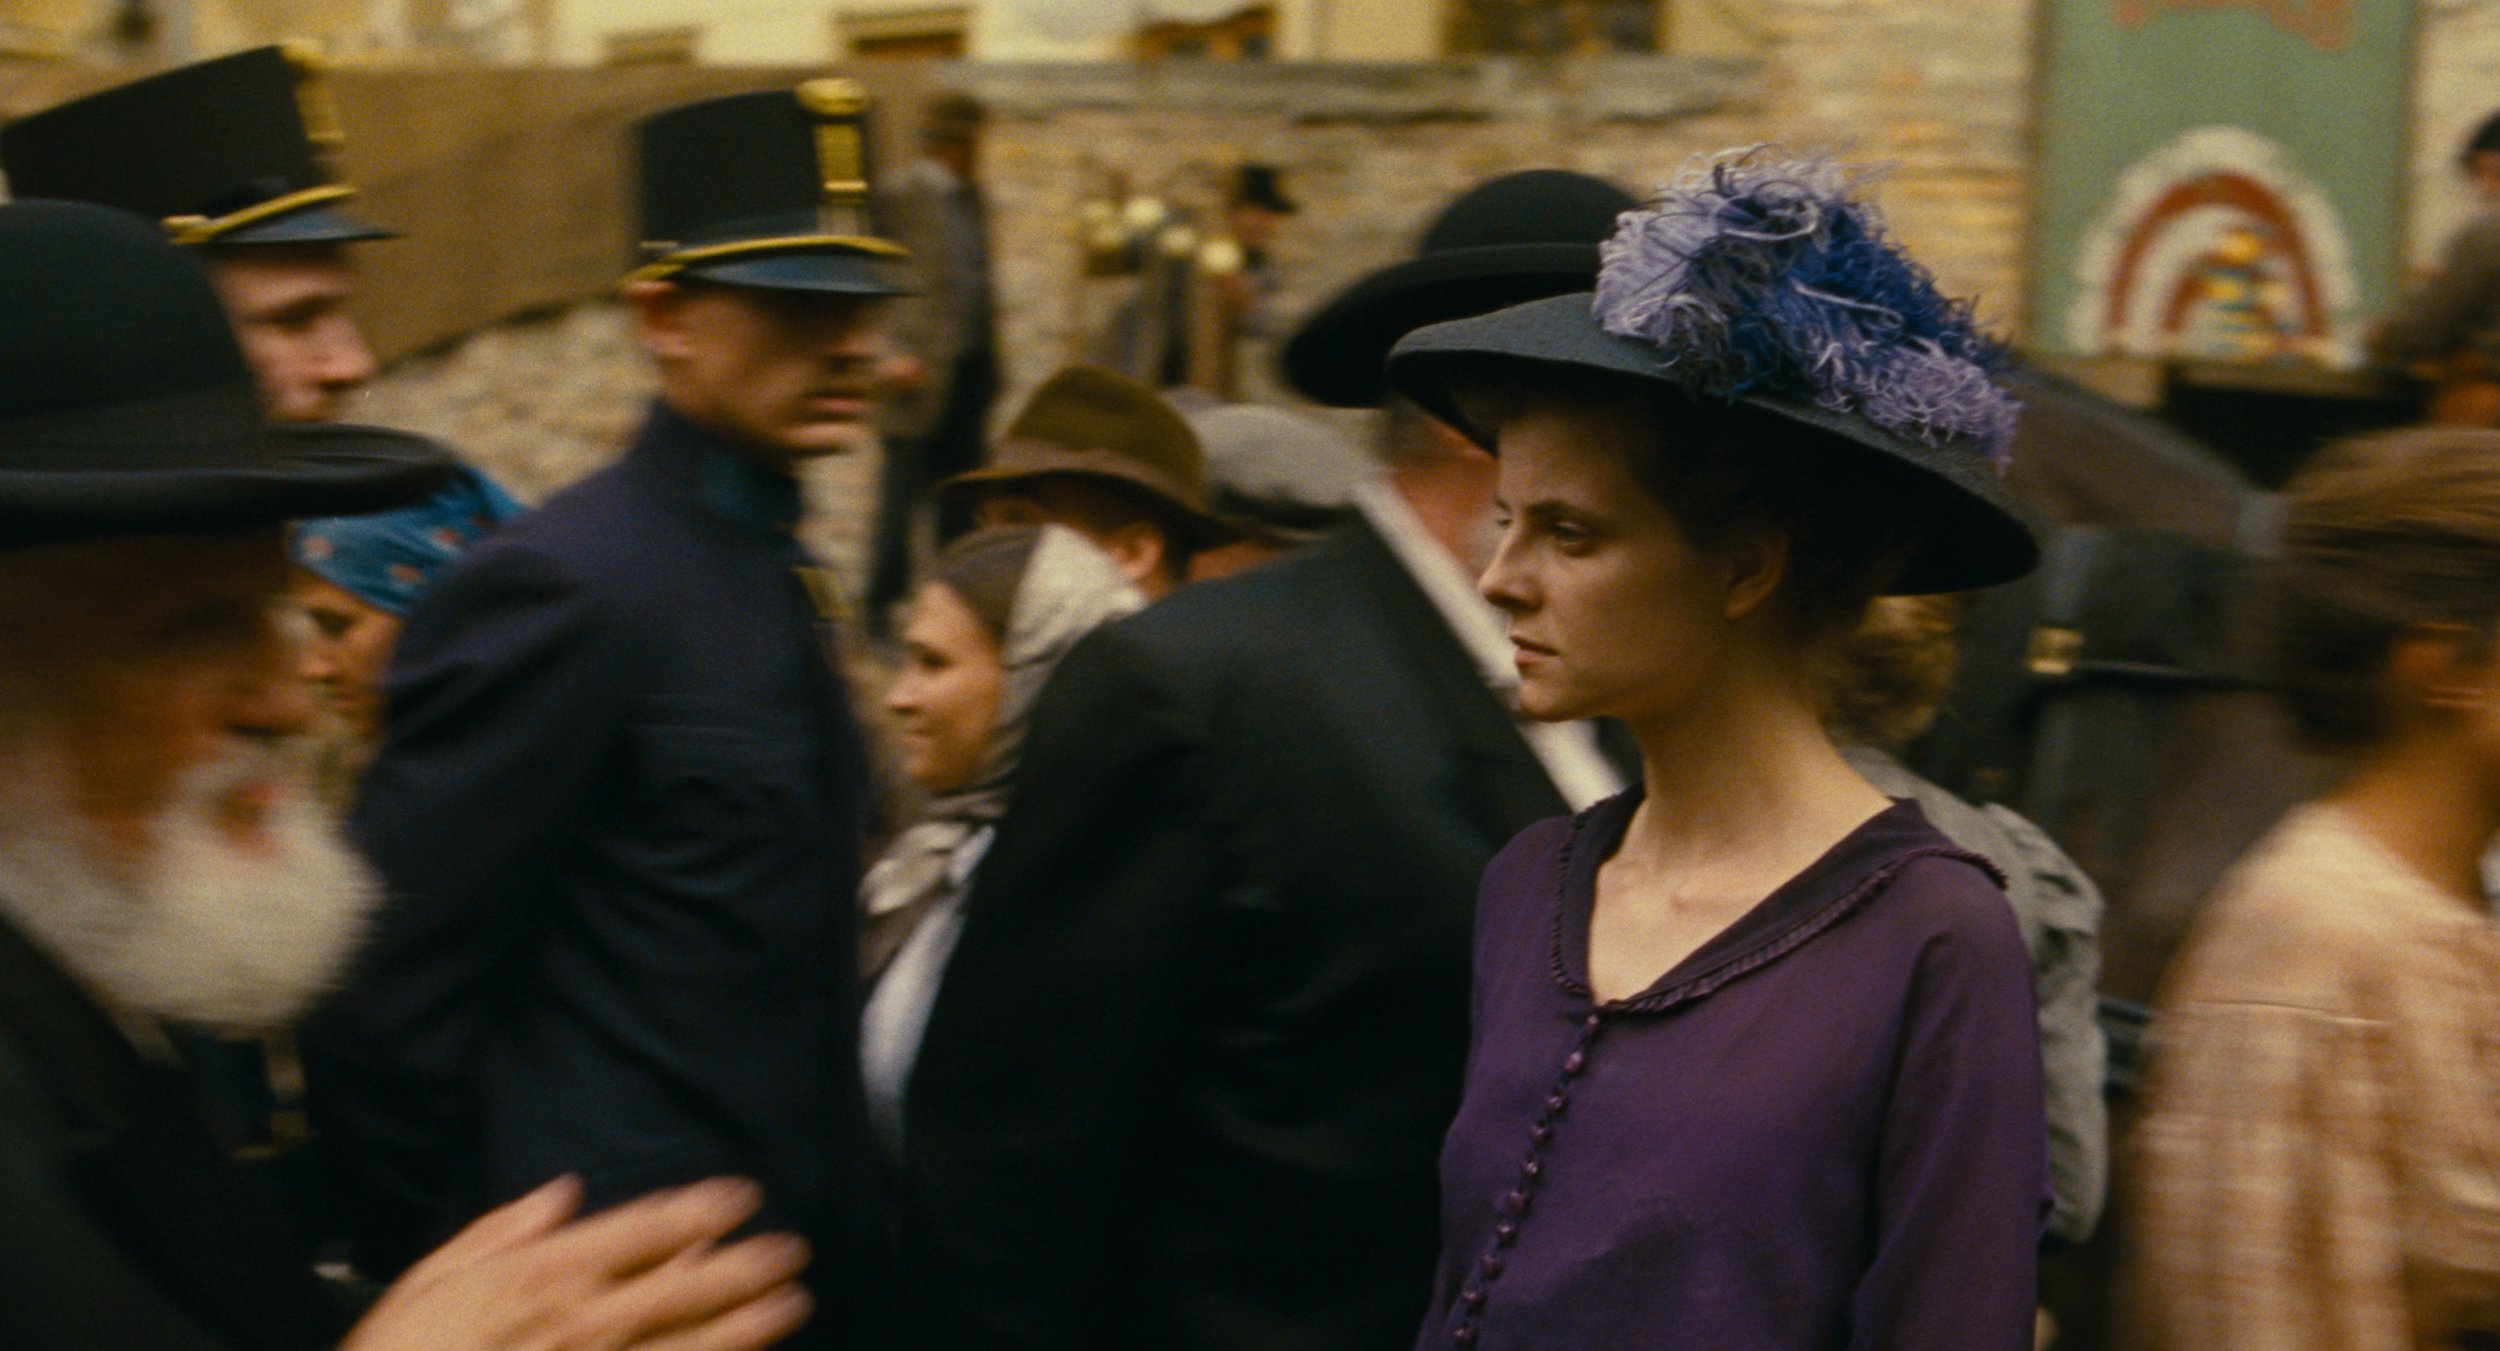 """Seamstress Írisz Leiter (Juli Jakub) tries to reclaim her family heritage, but gets caught up in intirgue in 1913 Budapest, in director László Nemes' drama """"Sunset."""" (Photo courtesy Sony Pictures Classics)"""